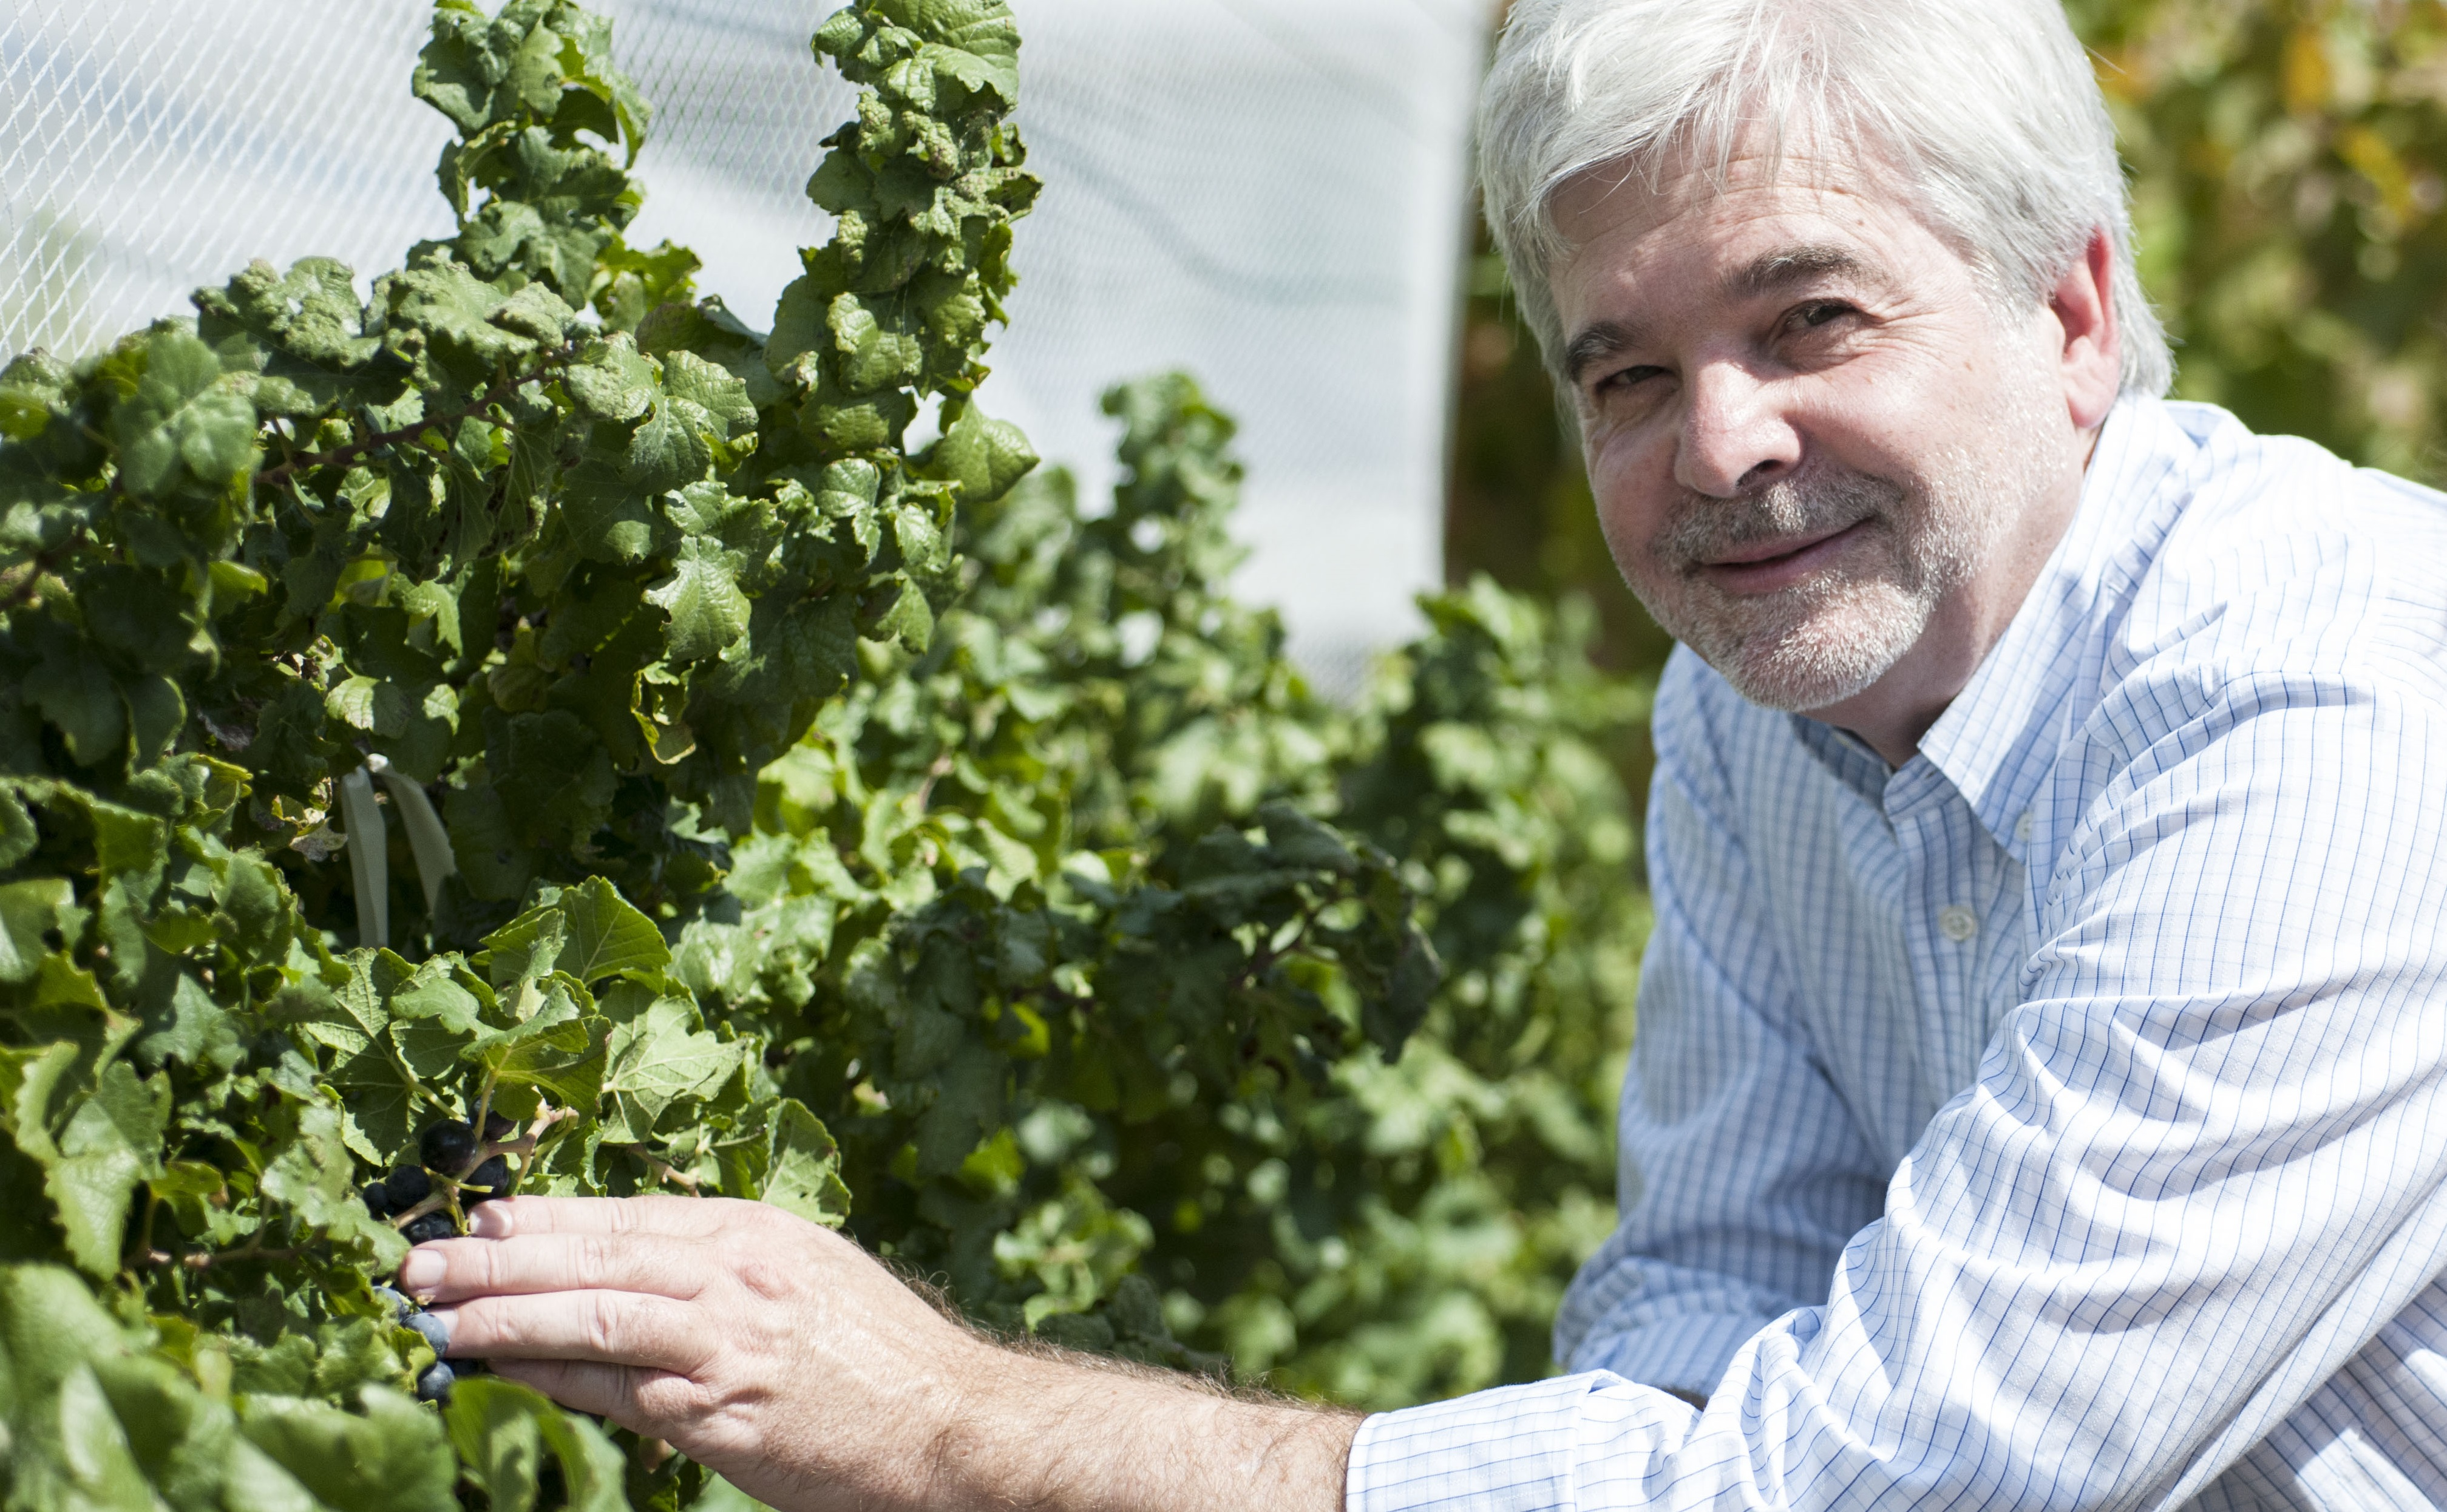 Dr Mark Thomas kneeling next to a microvine in the netted vineyard, Waite Campus Adelaide.